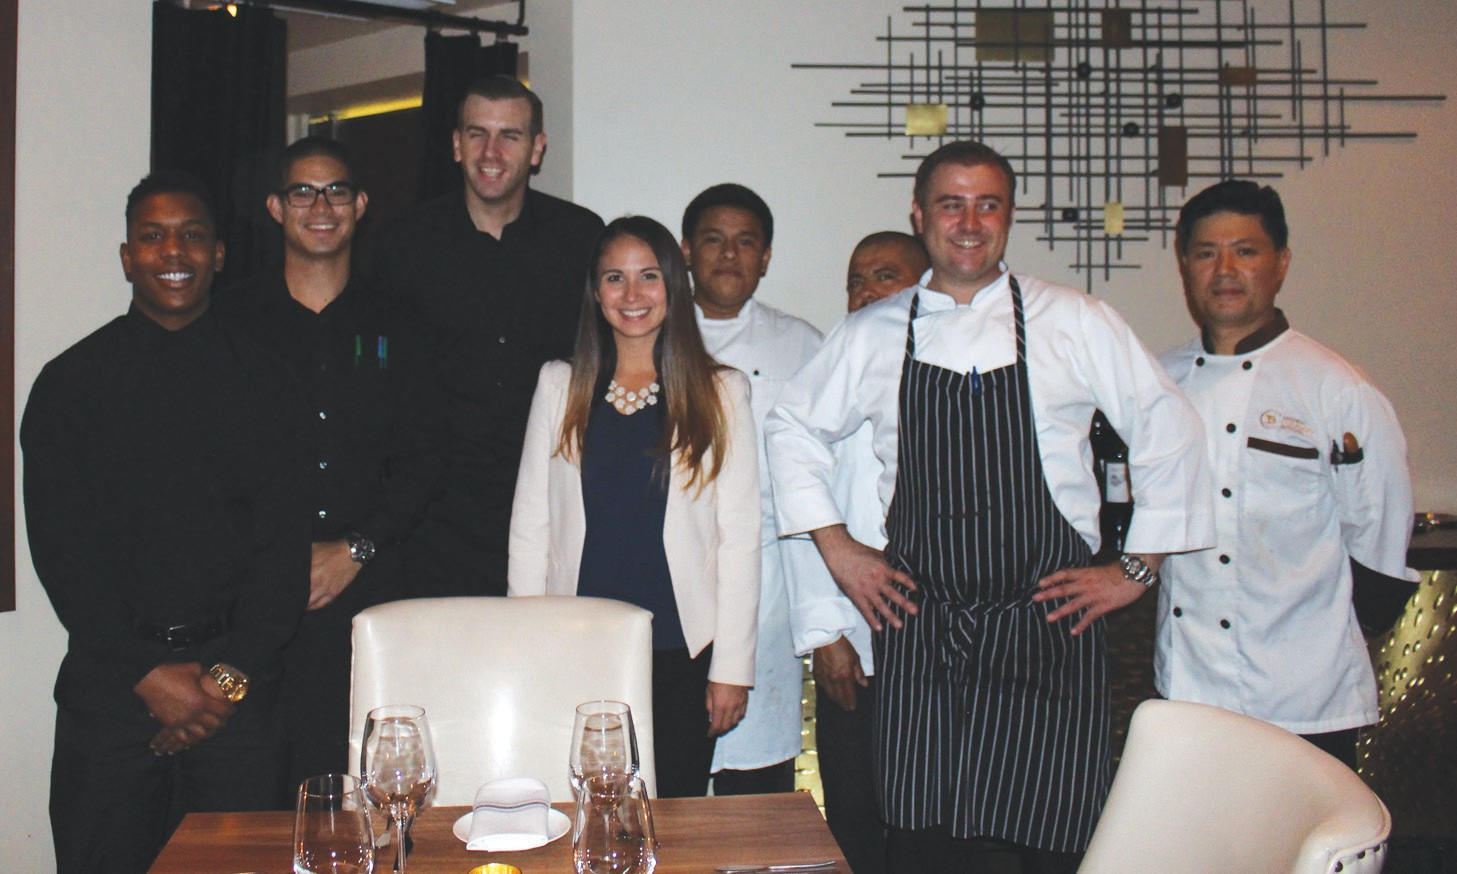 The team at Bellamy's includes, (from left) Oshave Sudds, Jason Villacortez, A. J. Miall, Kristina Miller, Luis Huape, Mani de Jesus, Jonathan Freyberg and Martin Kim.